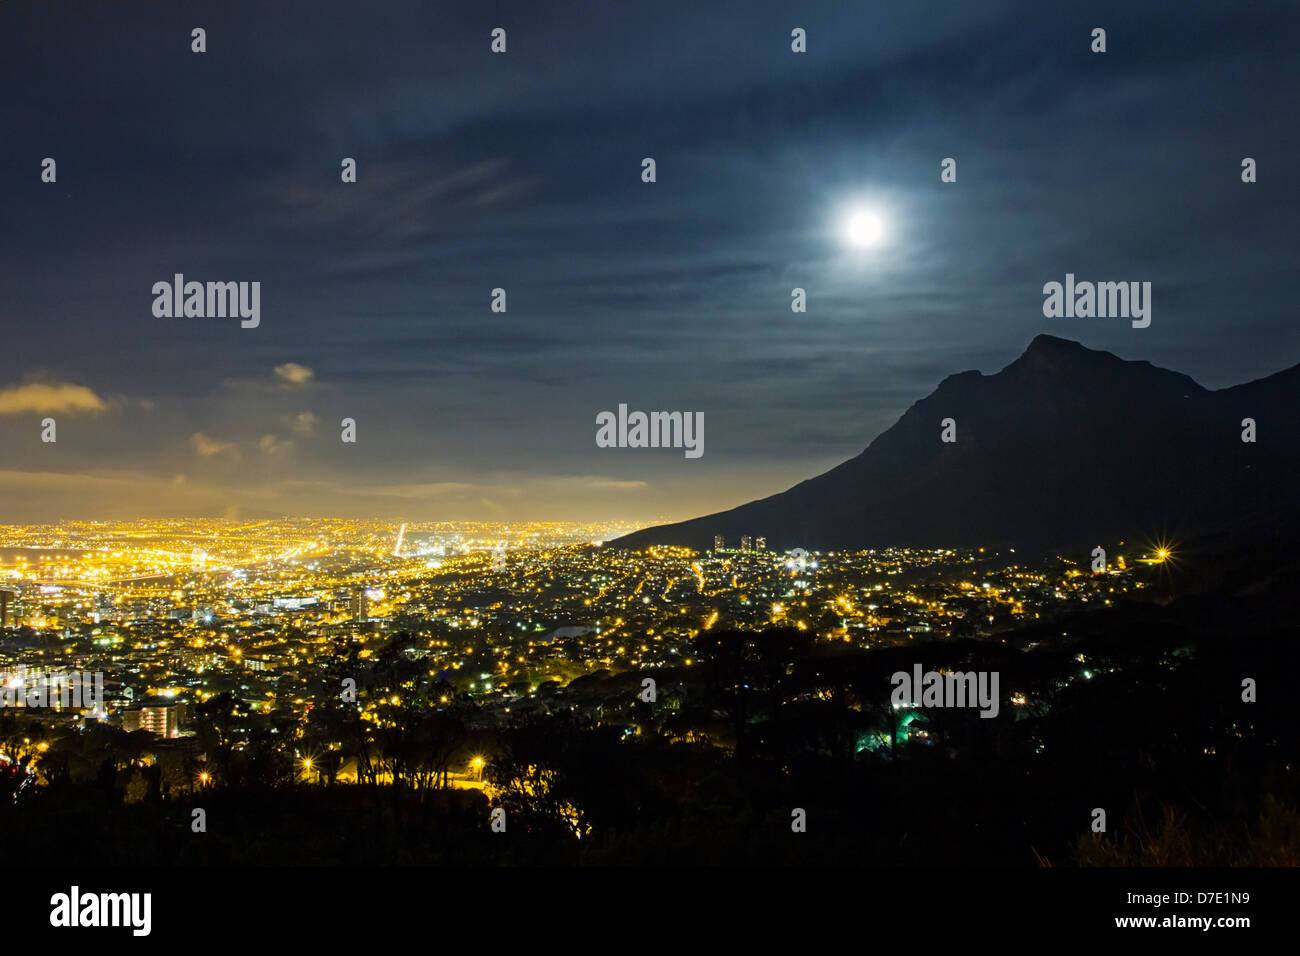 Lights of Cape Town city and full moon over Devils Peak, Table Mountain at night - Stock Image